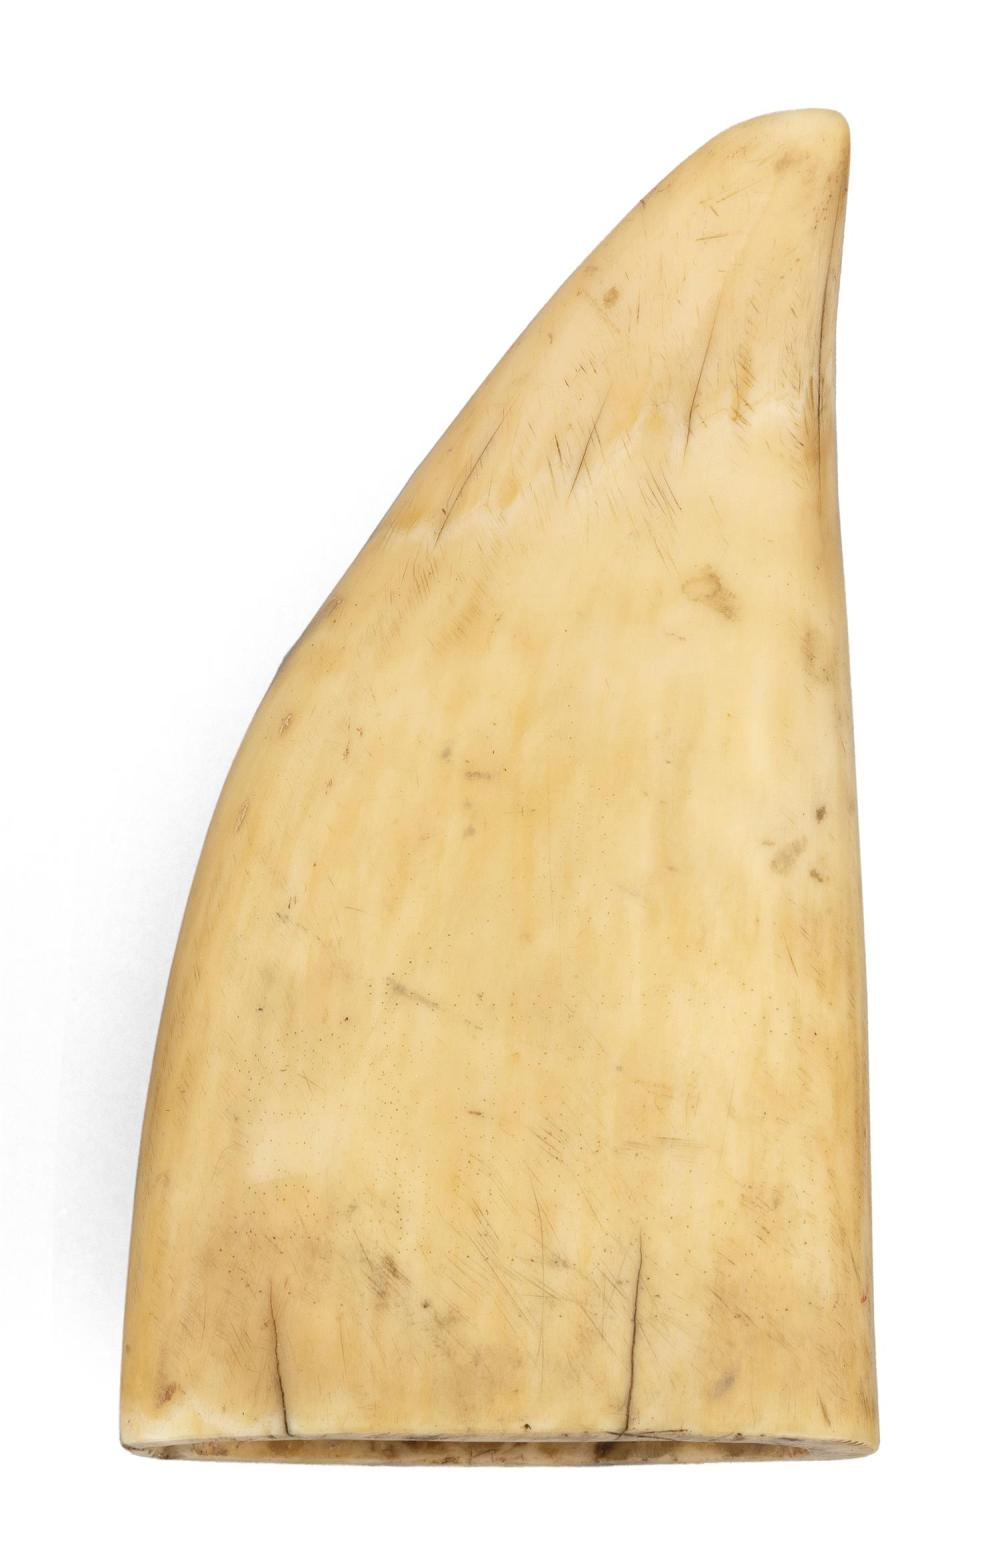 SCRIMSHAW WHALE'S TOOTH DEPICTING A CHURCH Believed to be a scene in Portsmouth, New Hampshire. Some pinpoint elements. Length 4.5